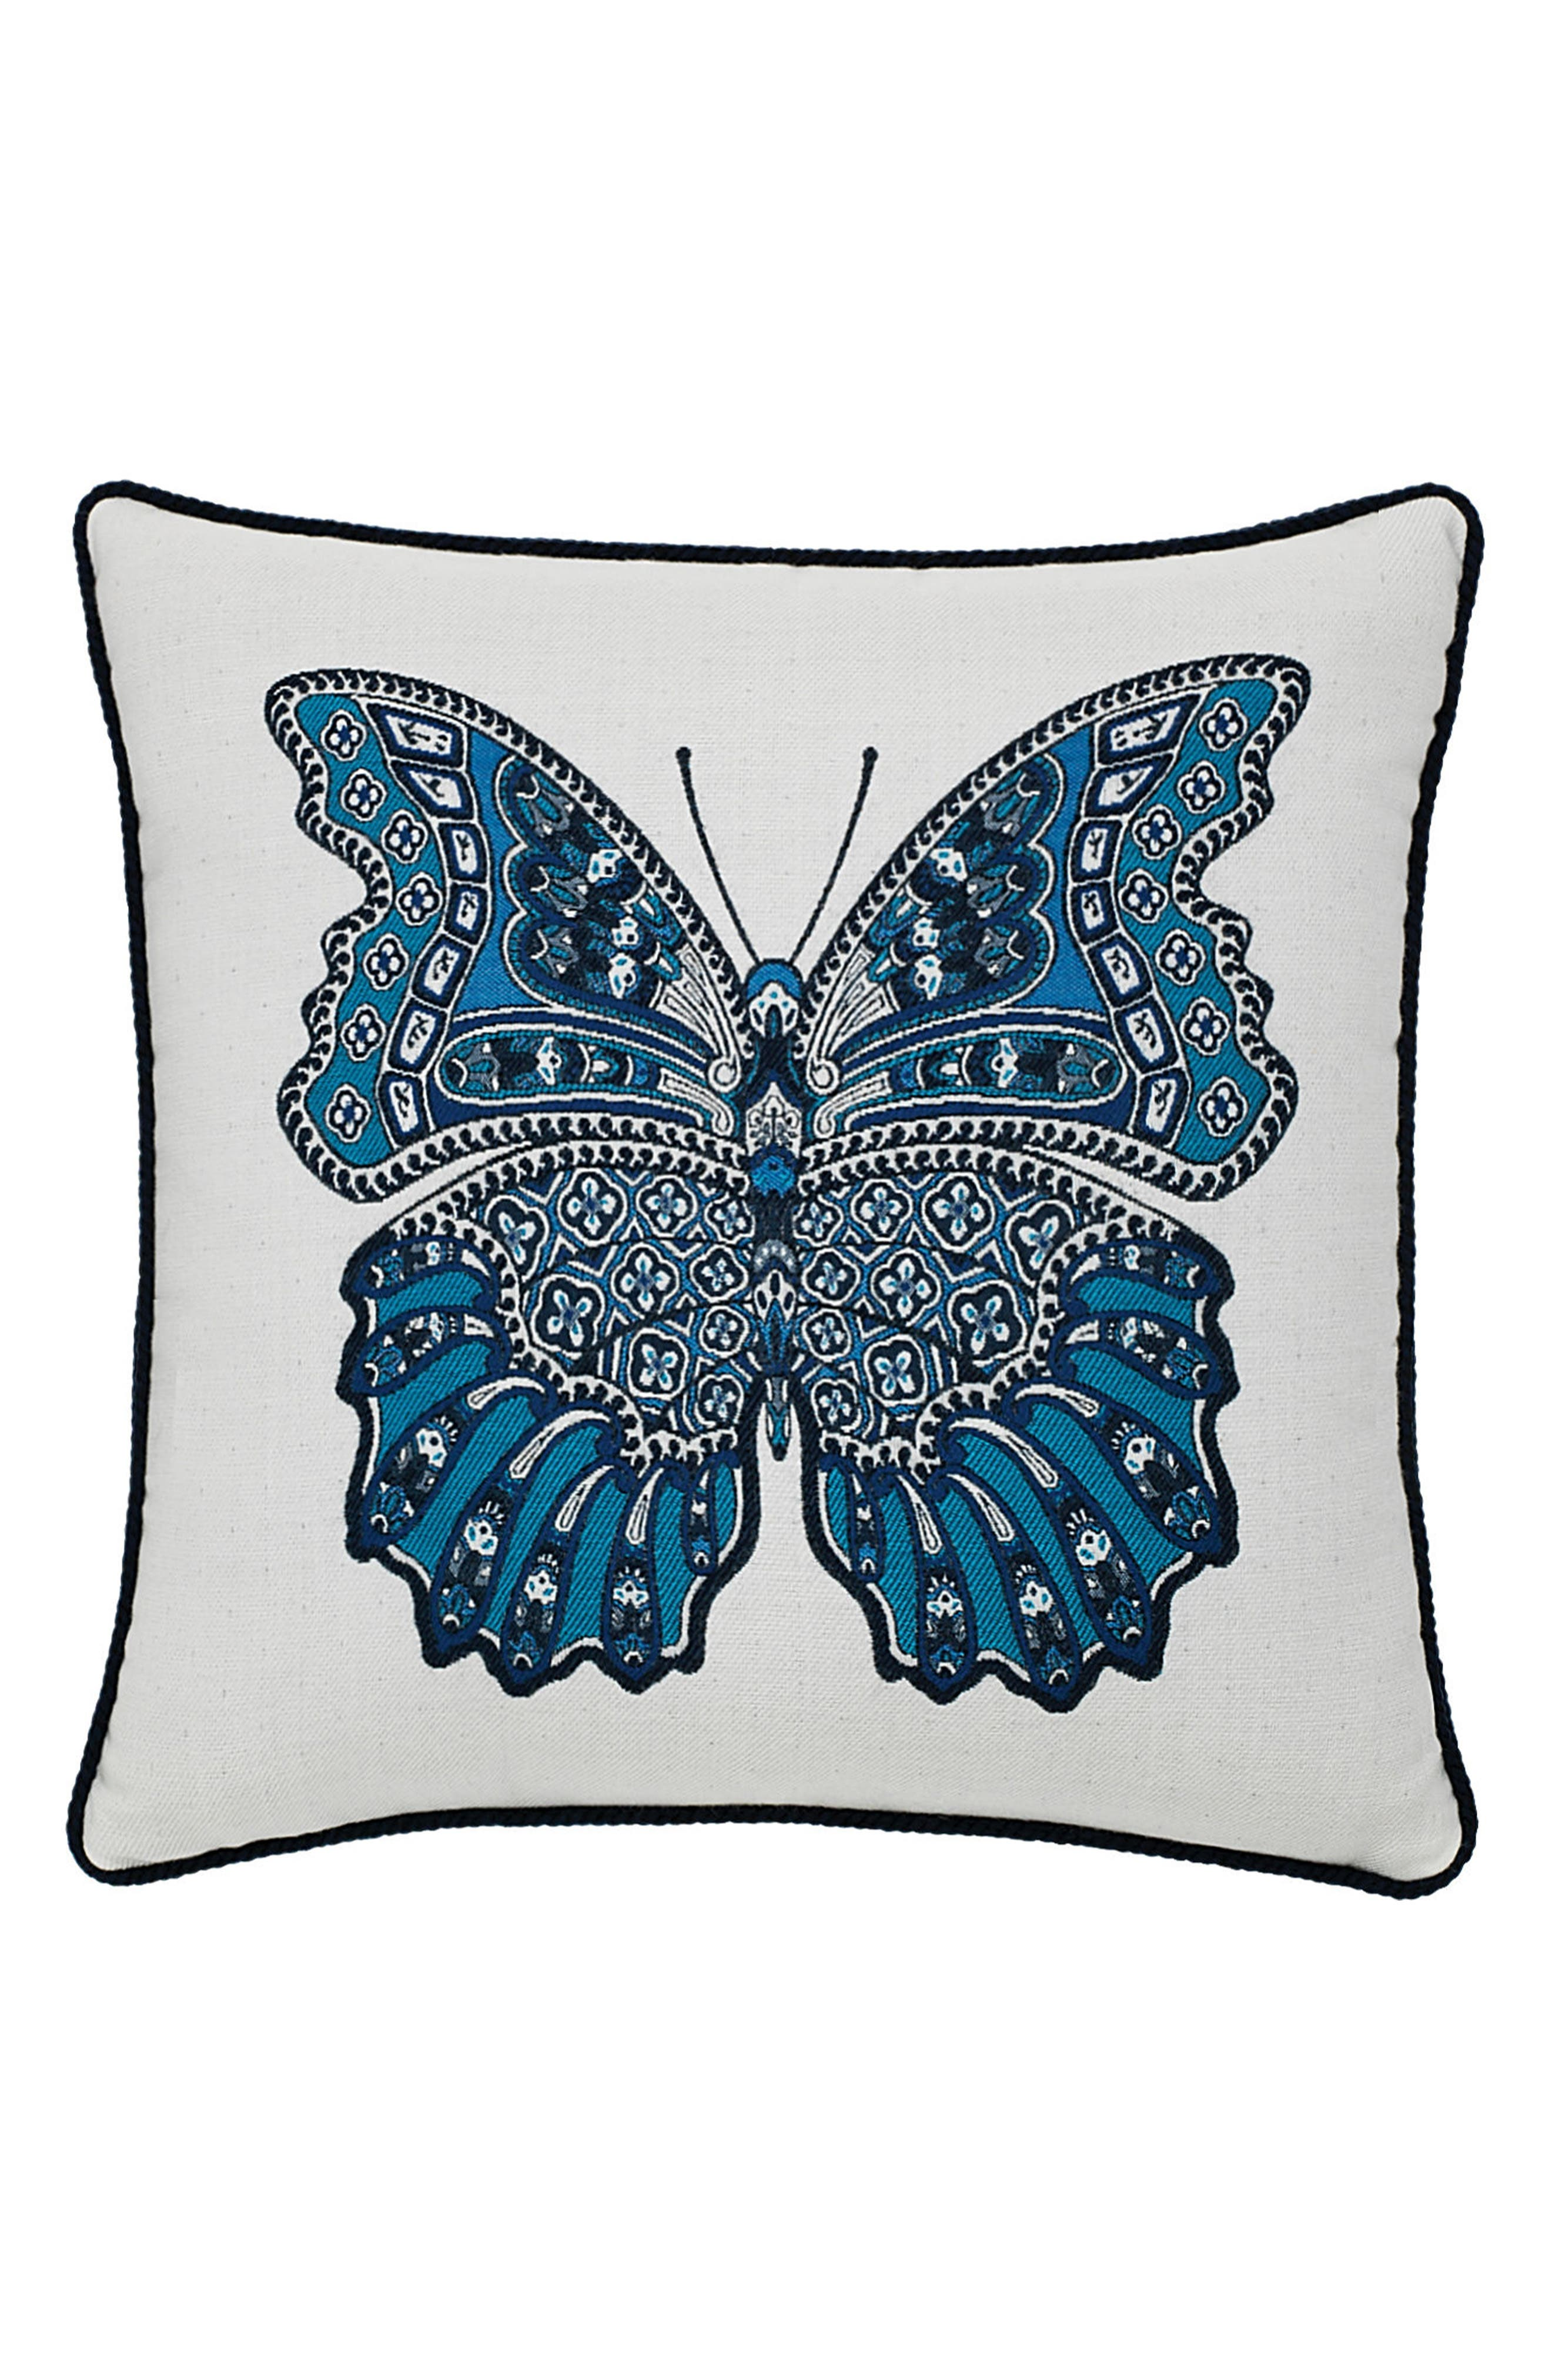 Mariposa Azure Indoor/Outdoor Accent Pillow,                             Main thumbnail 1, color,                             Blue/ White